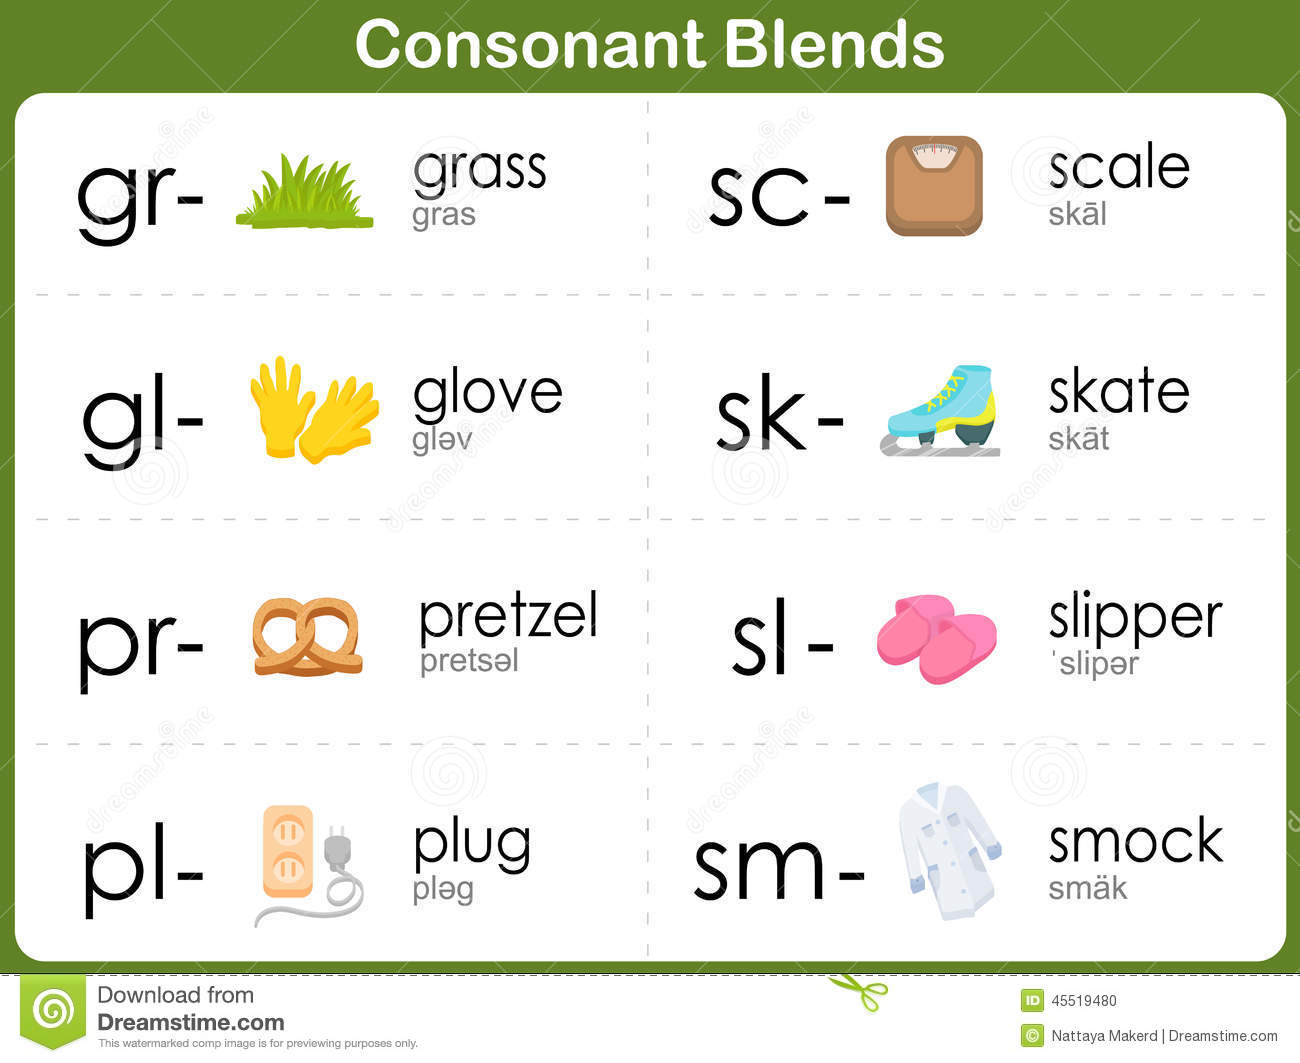 Consonant Blends Worksheets 4th Grade Ending Consonant Blends – Consonant Blends Worksheets for Kindergarten